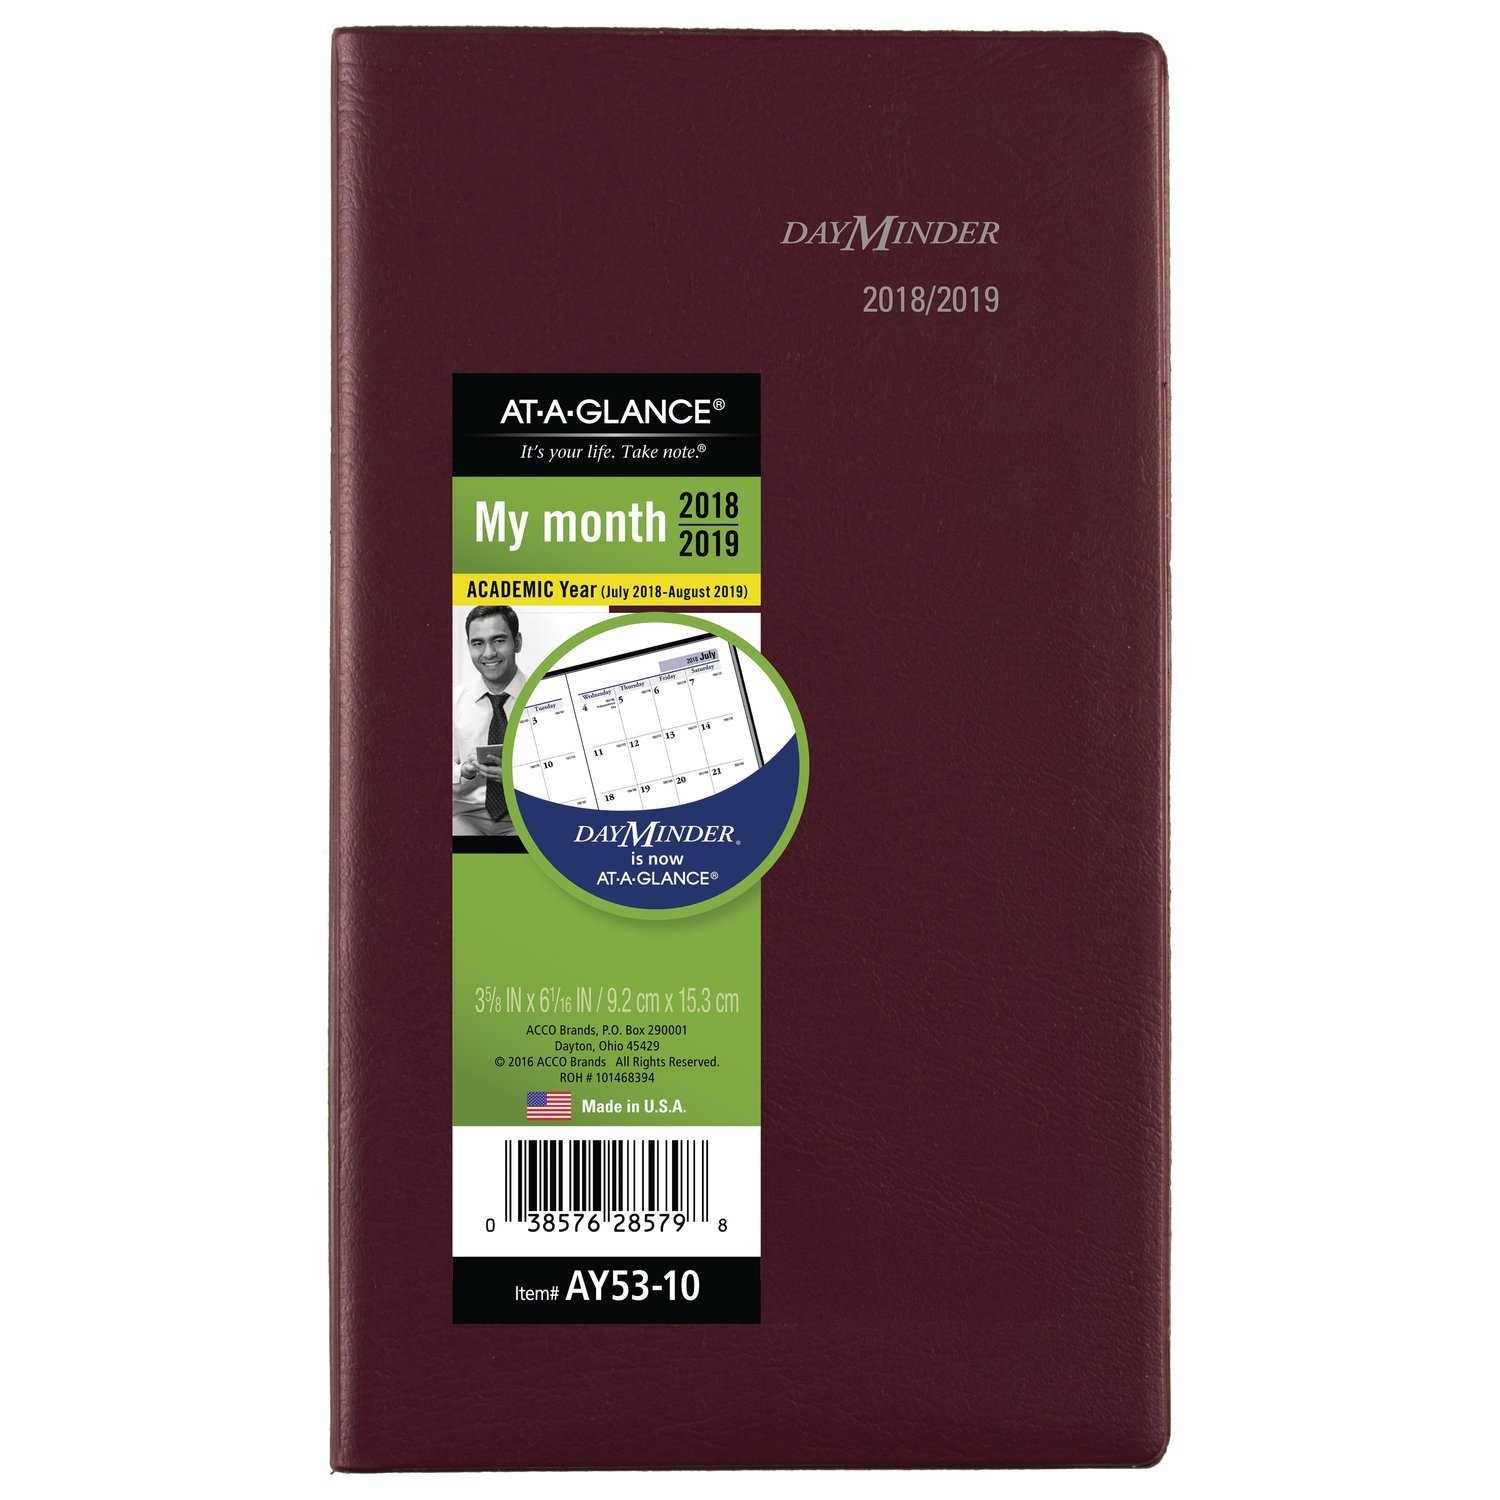 AT-A-GLANCE 2018-2019 Academic Year Monthly Planner, Pocket, 3-5/8 x 6-1/16, DayMinder, Burgundy (AY5314) ACCO Brands AY531419